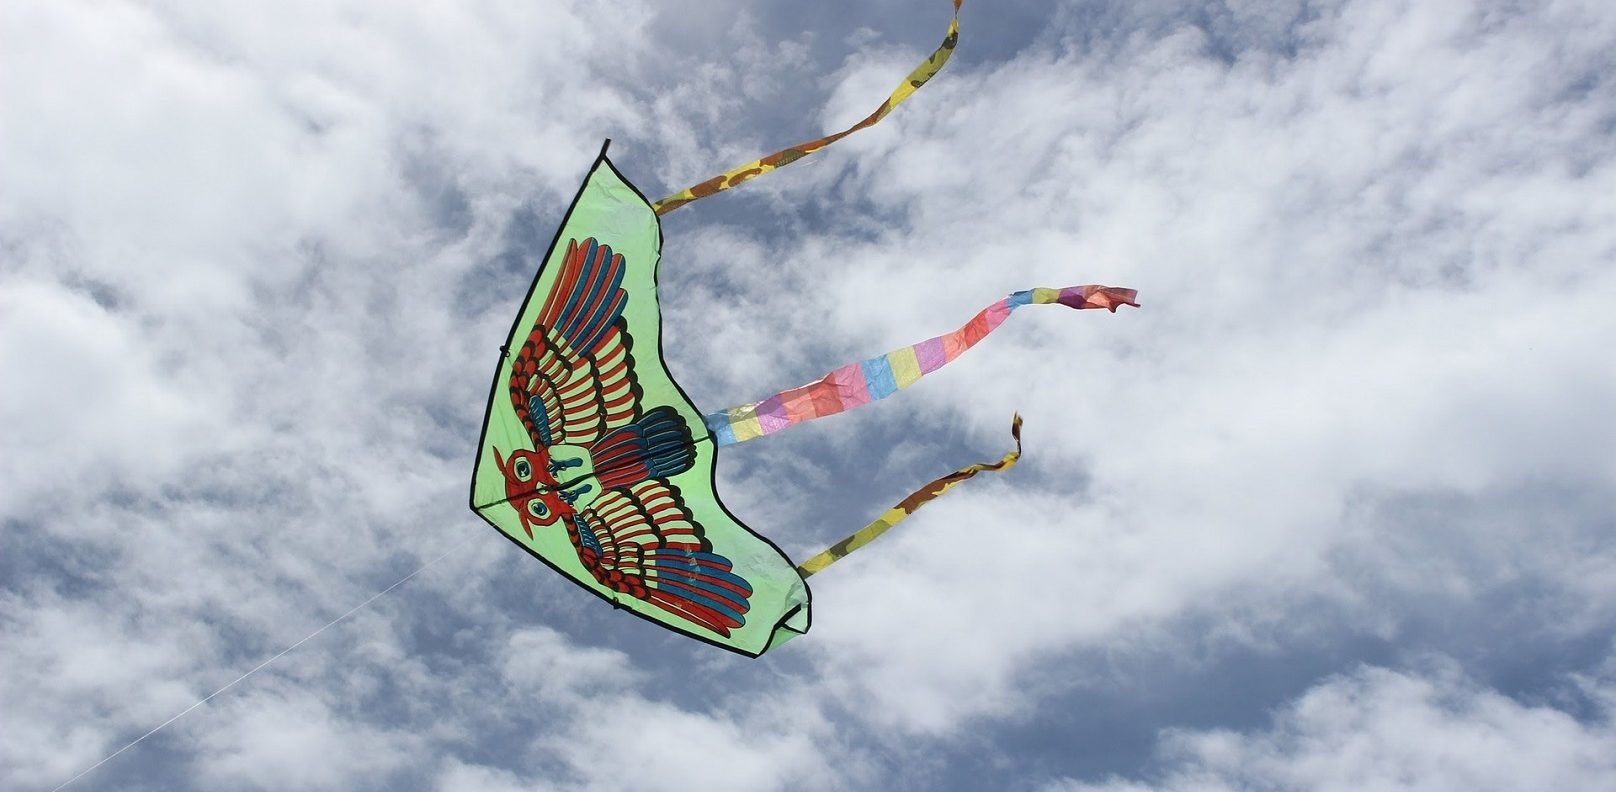 Kite flying with clouds